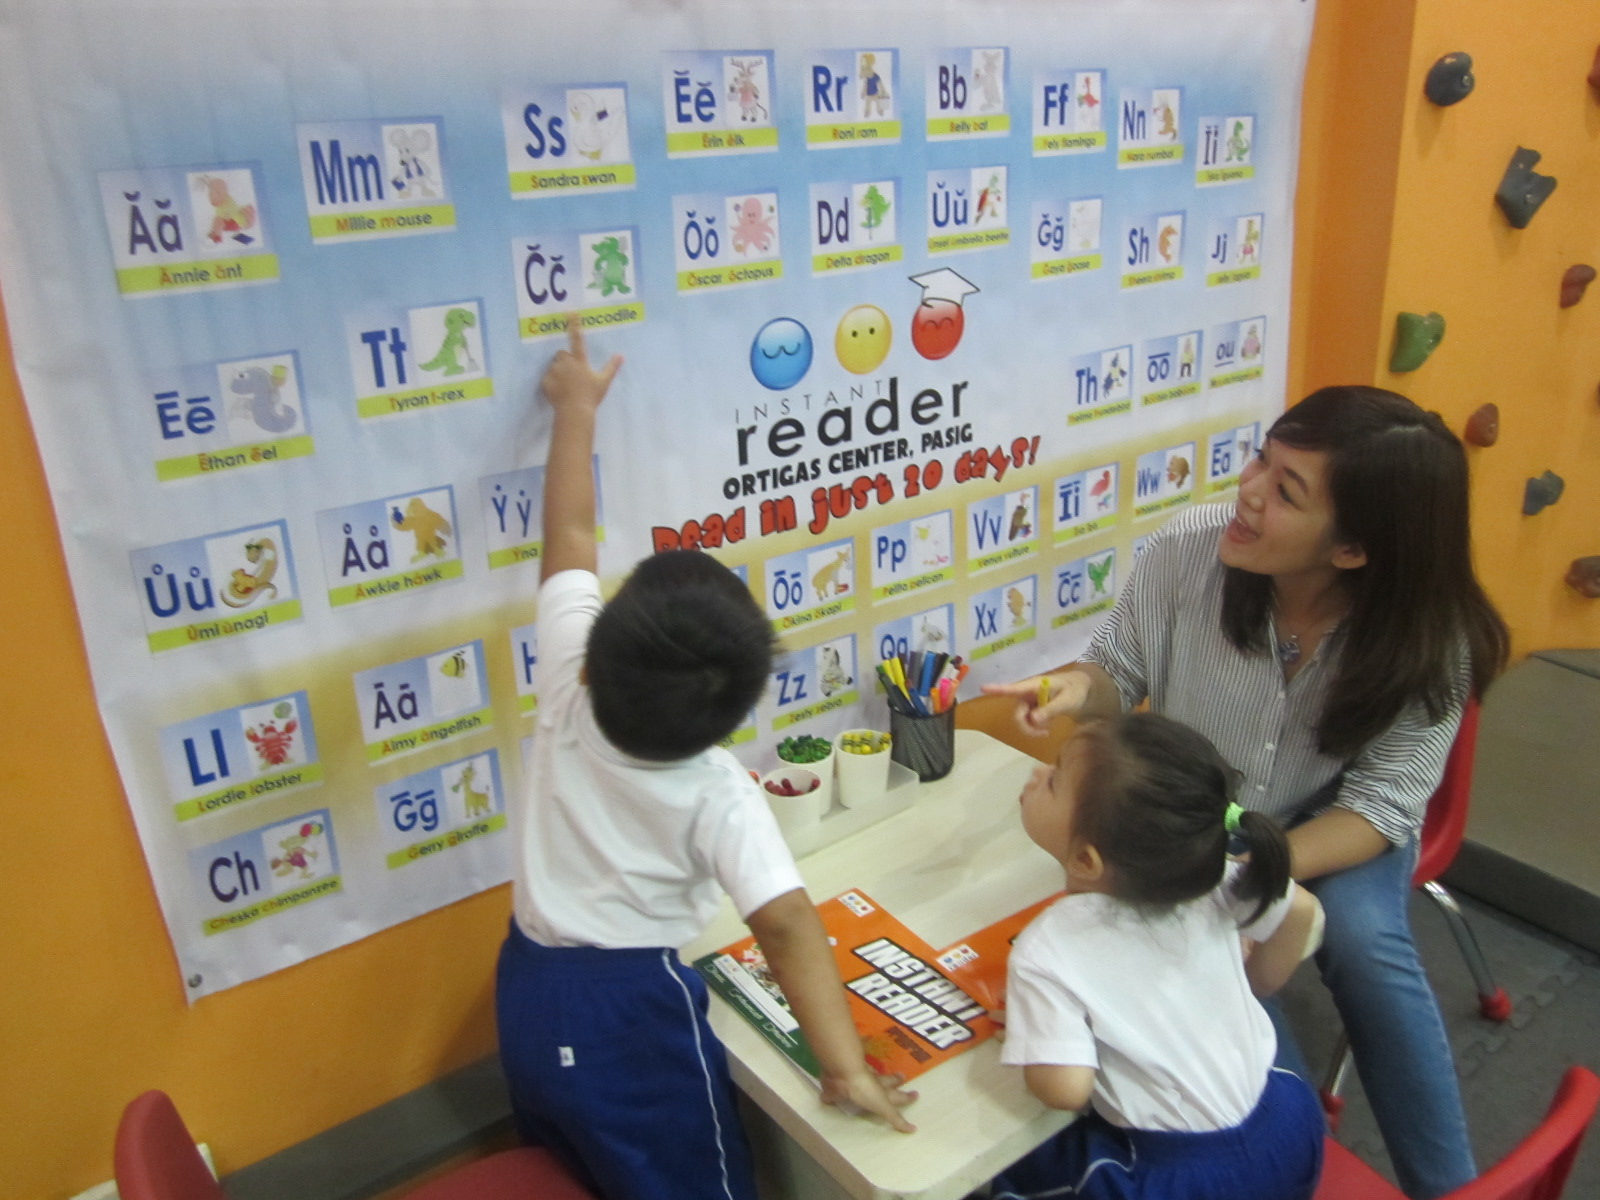 Instant Reader session 7